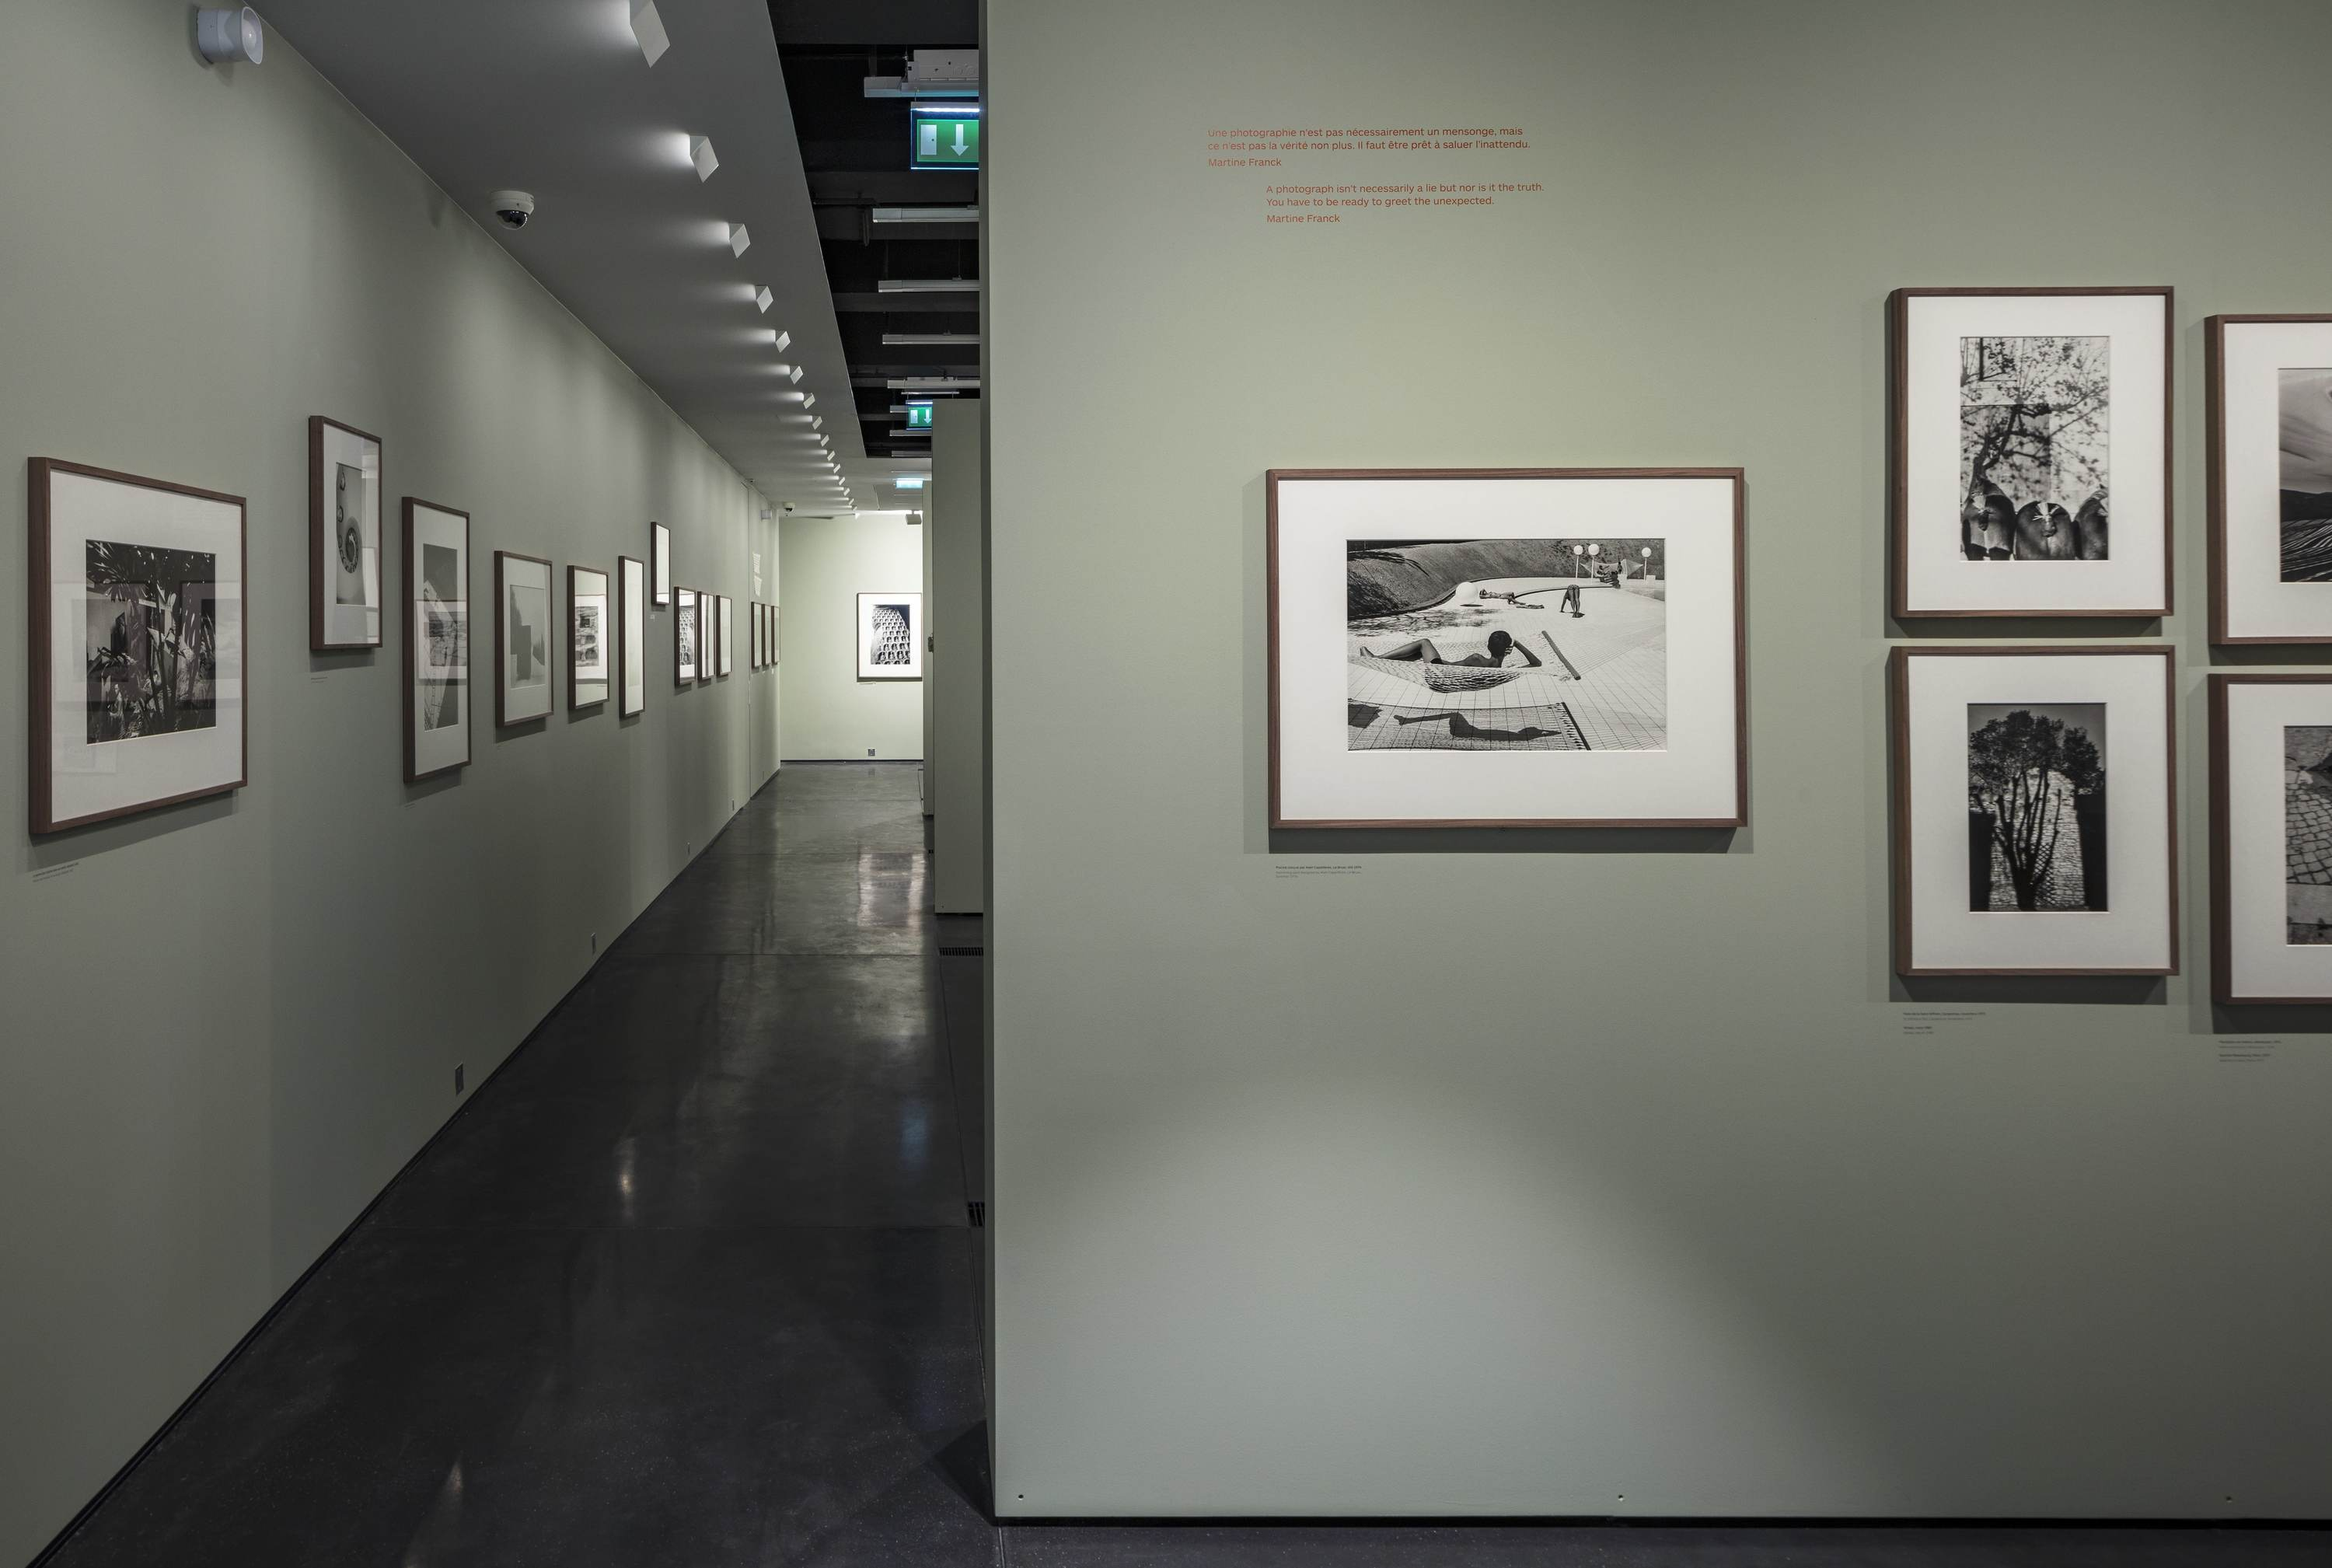 Fondation Henri Cartier-Bresson